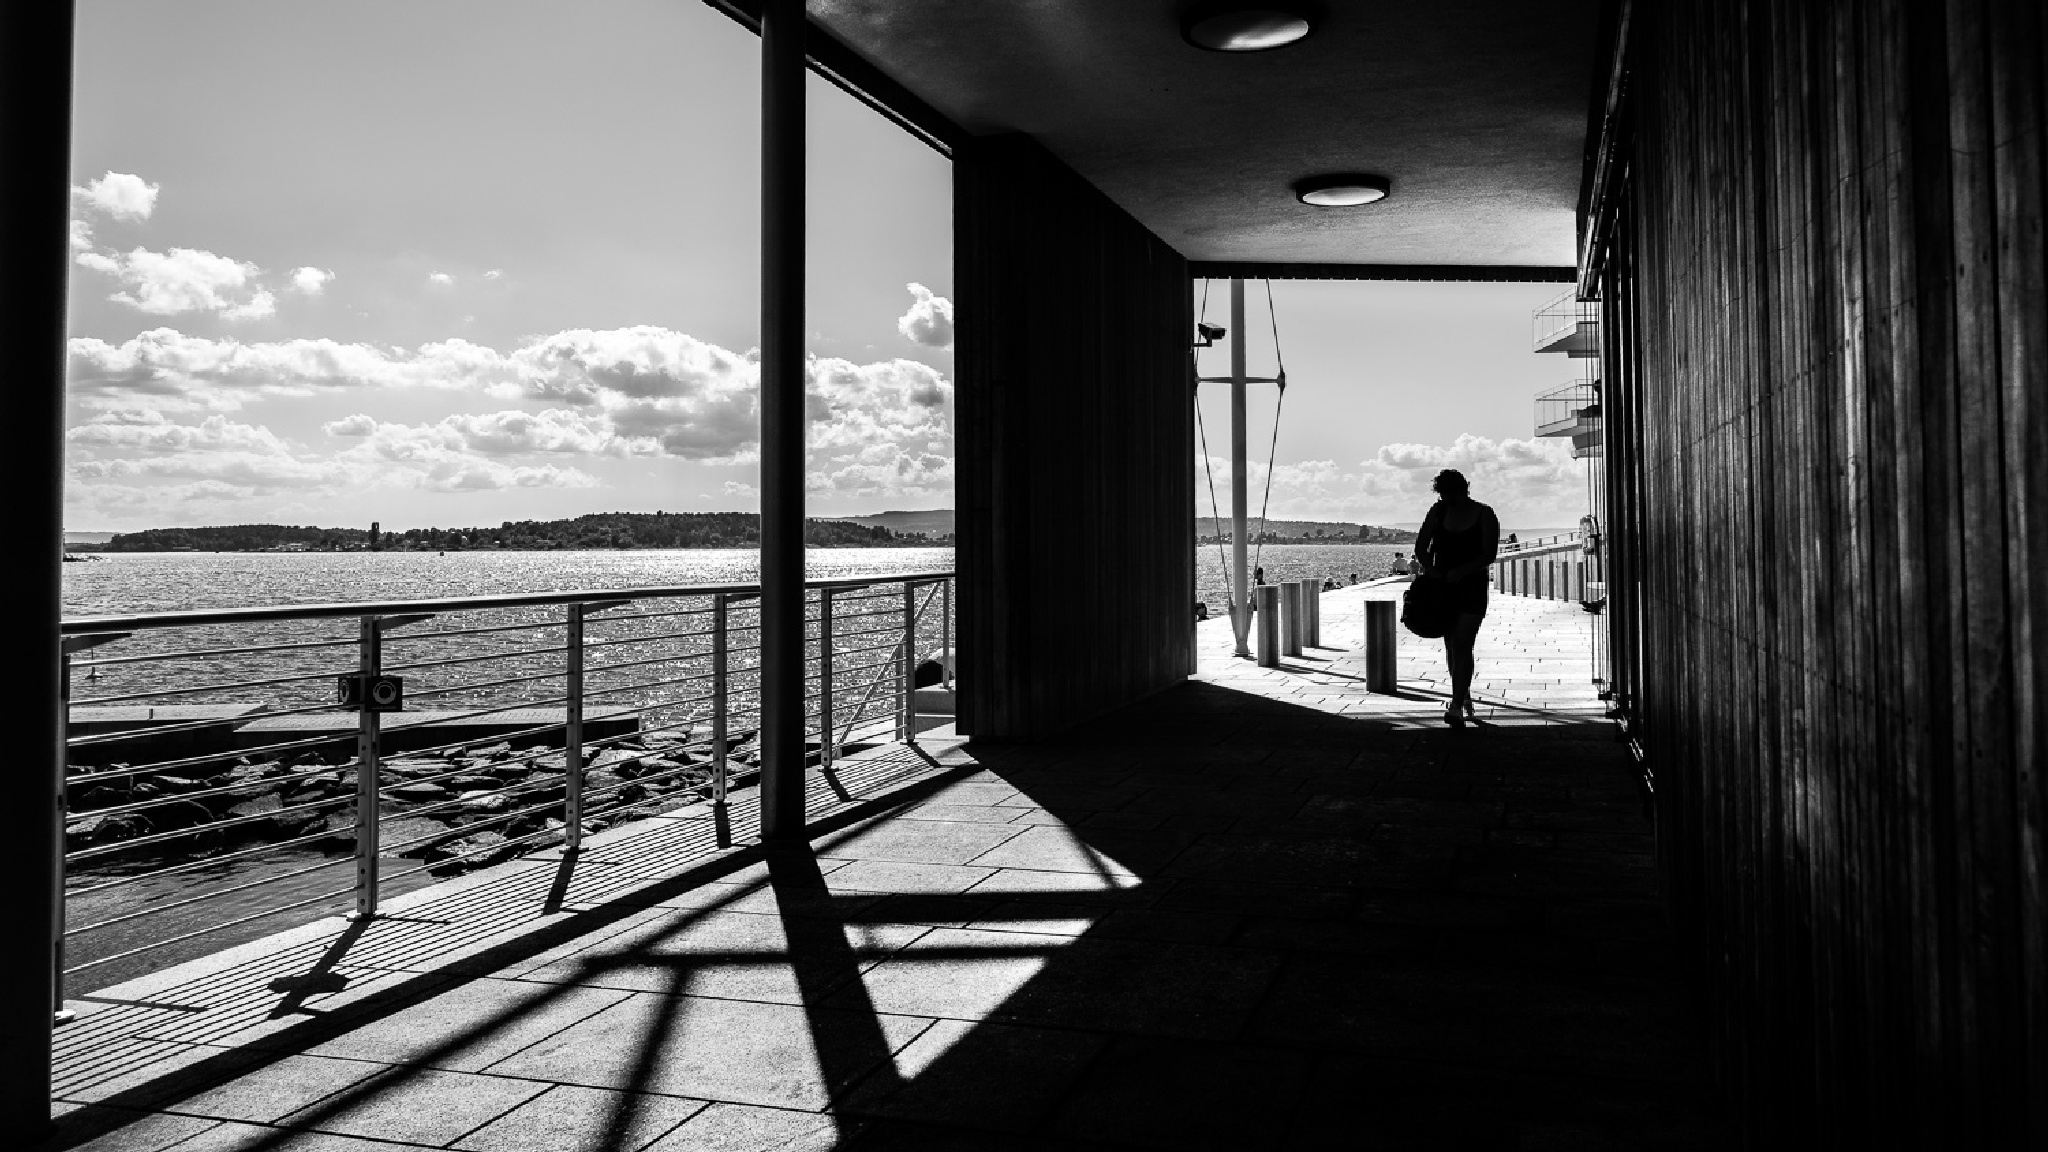 A sunny day - Oslo, Norway - Black and white street photography by Giuseppe Milo